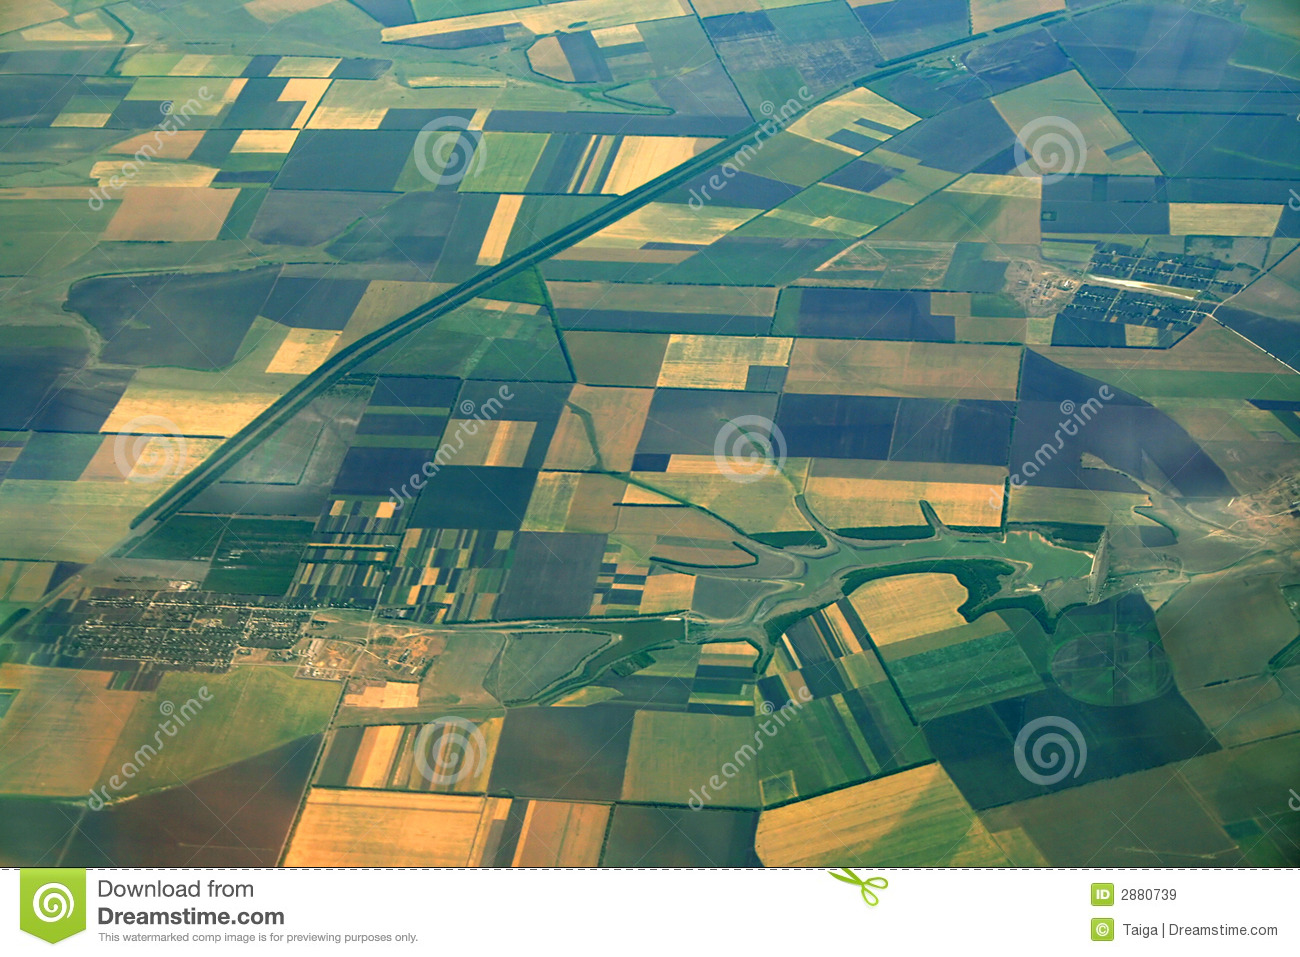 Clipart Pictures Iceberg Aerial View Of Farmlands Royalty Free Stock Images Image